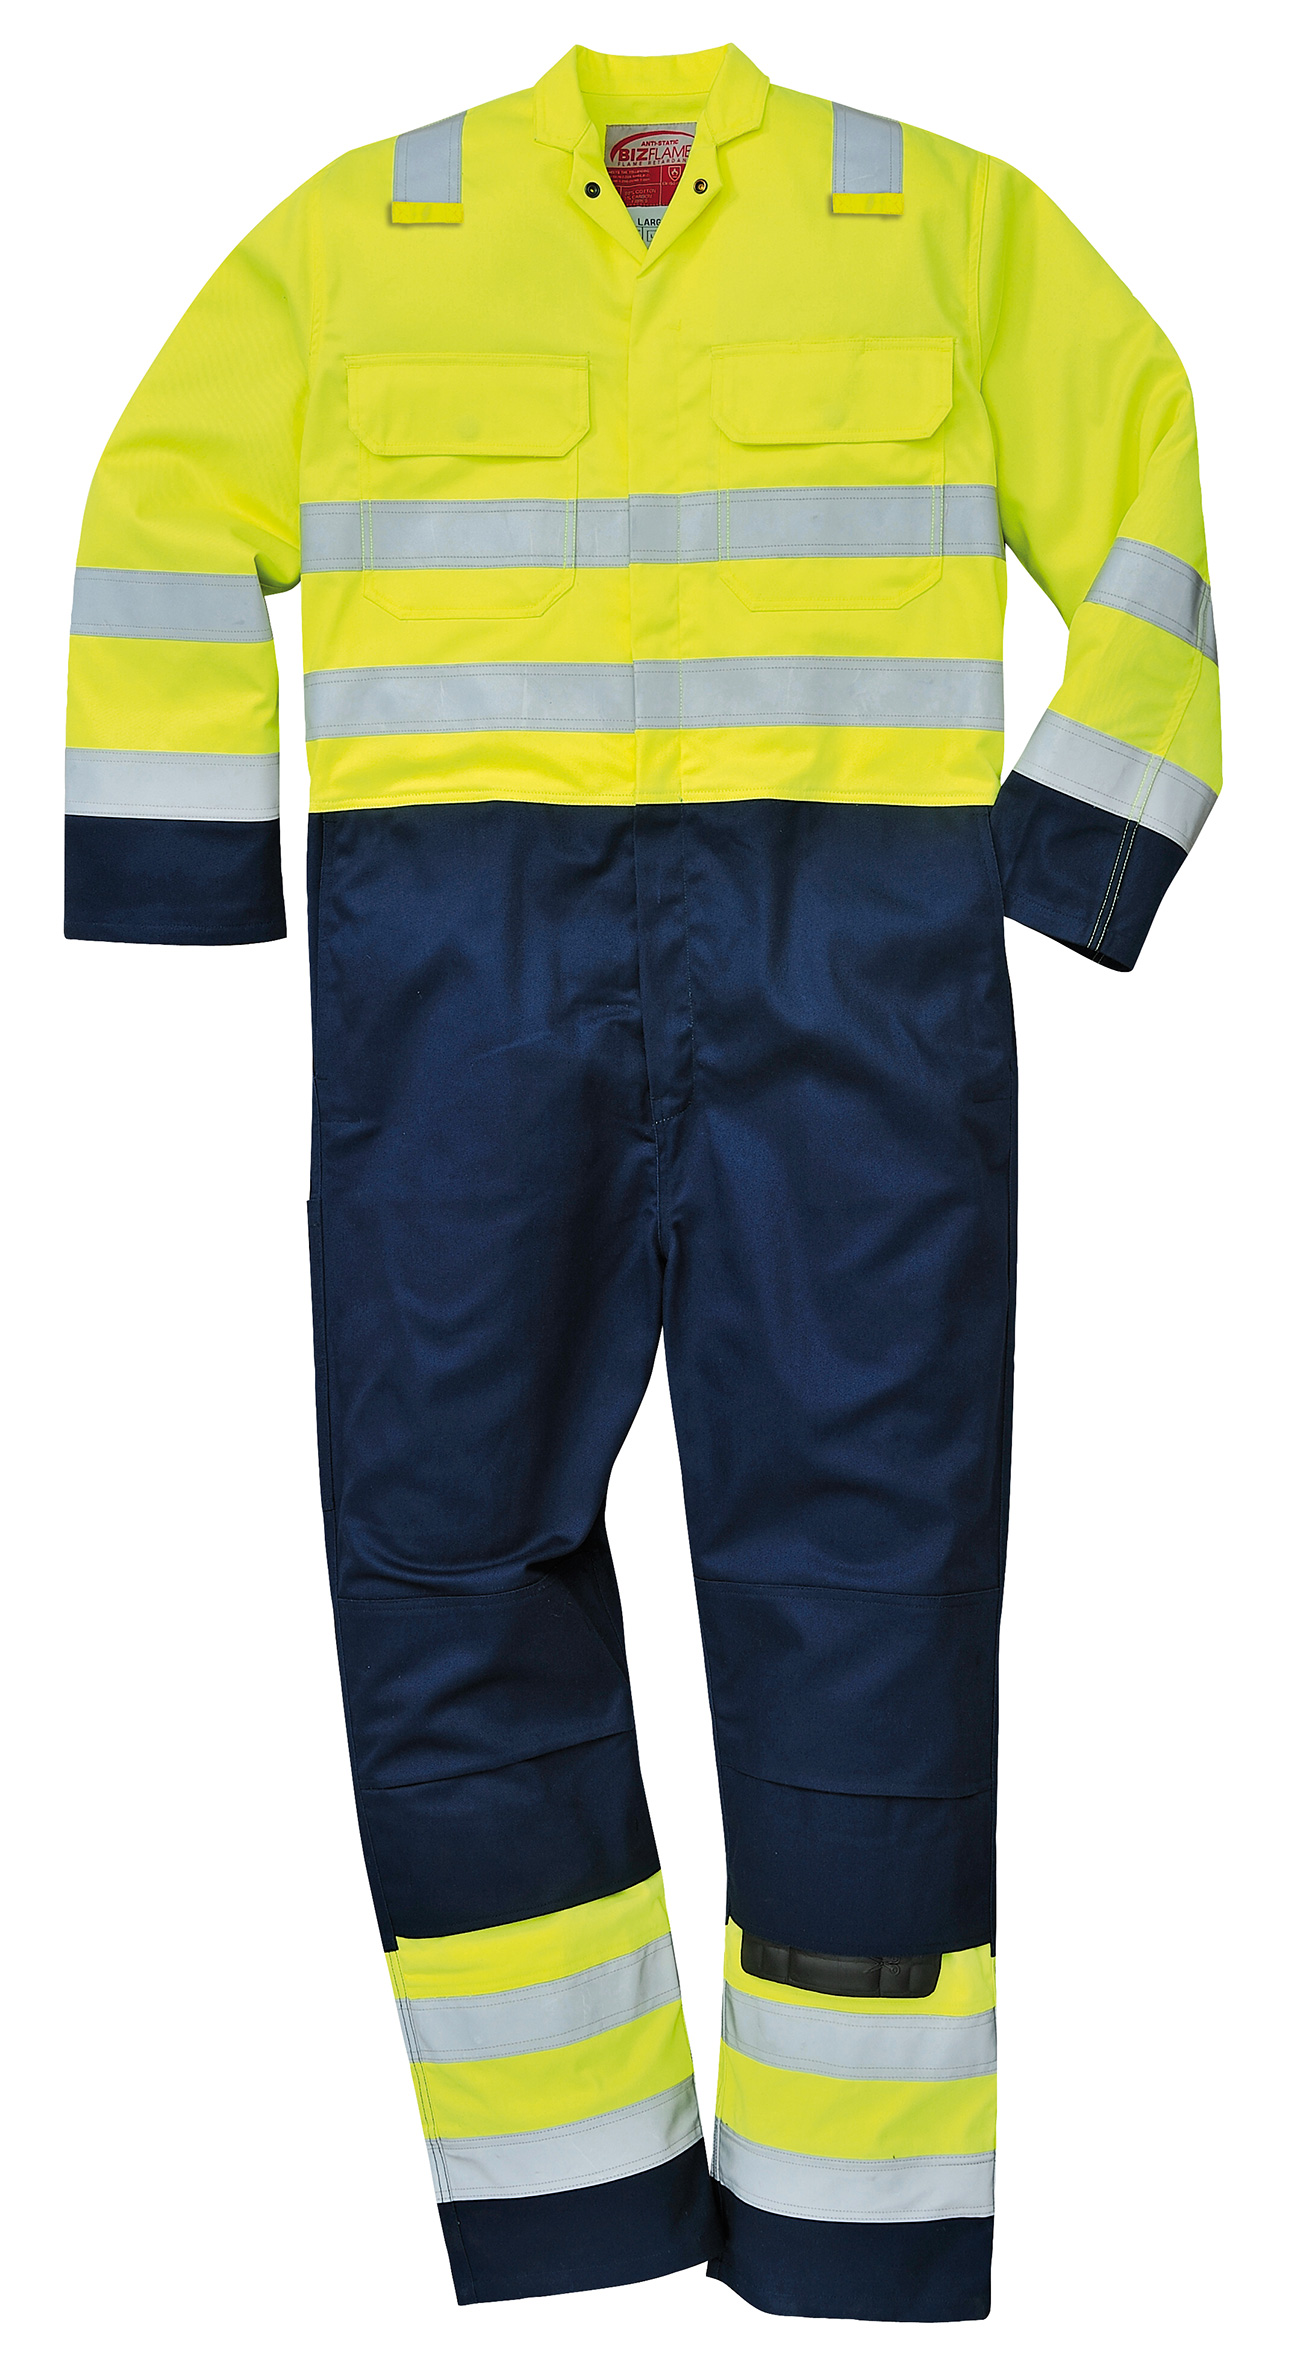 Biz7 Flame Resistant Anti Static Coverall Yellow//Navy Hi Vis Size 3XL